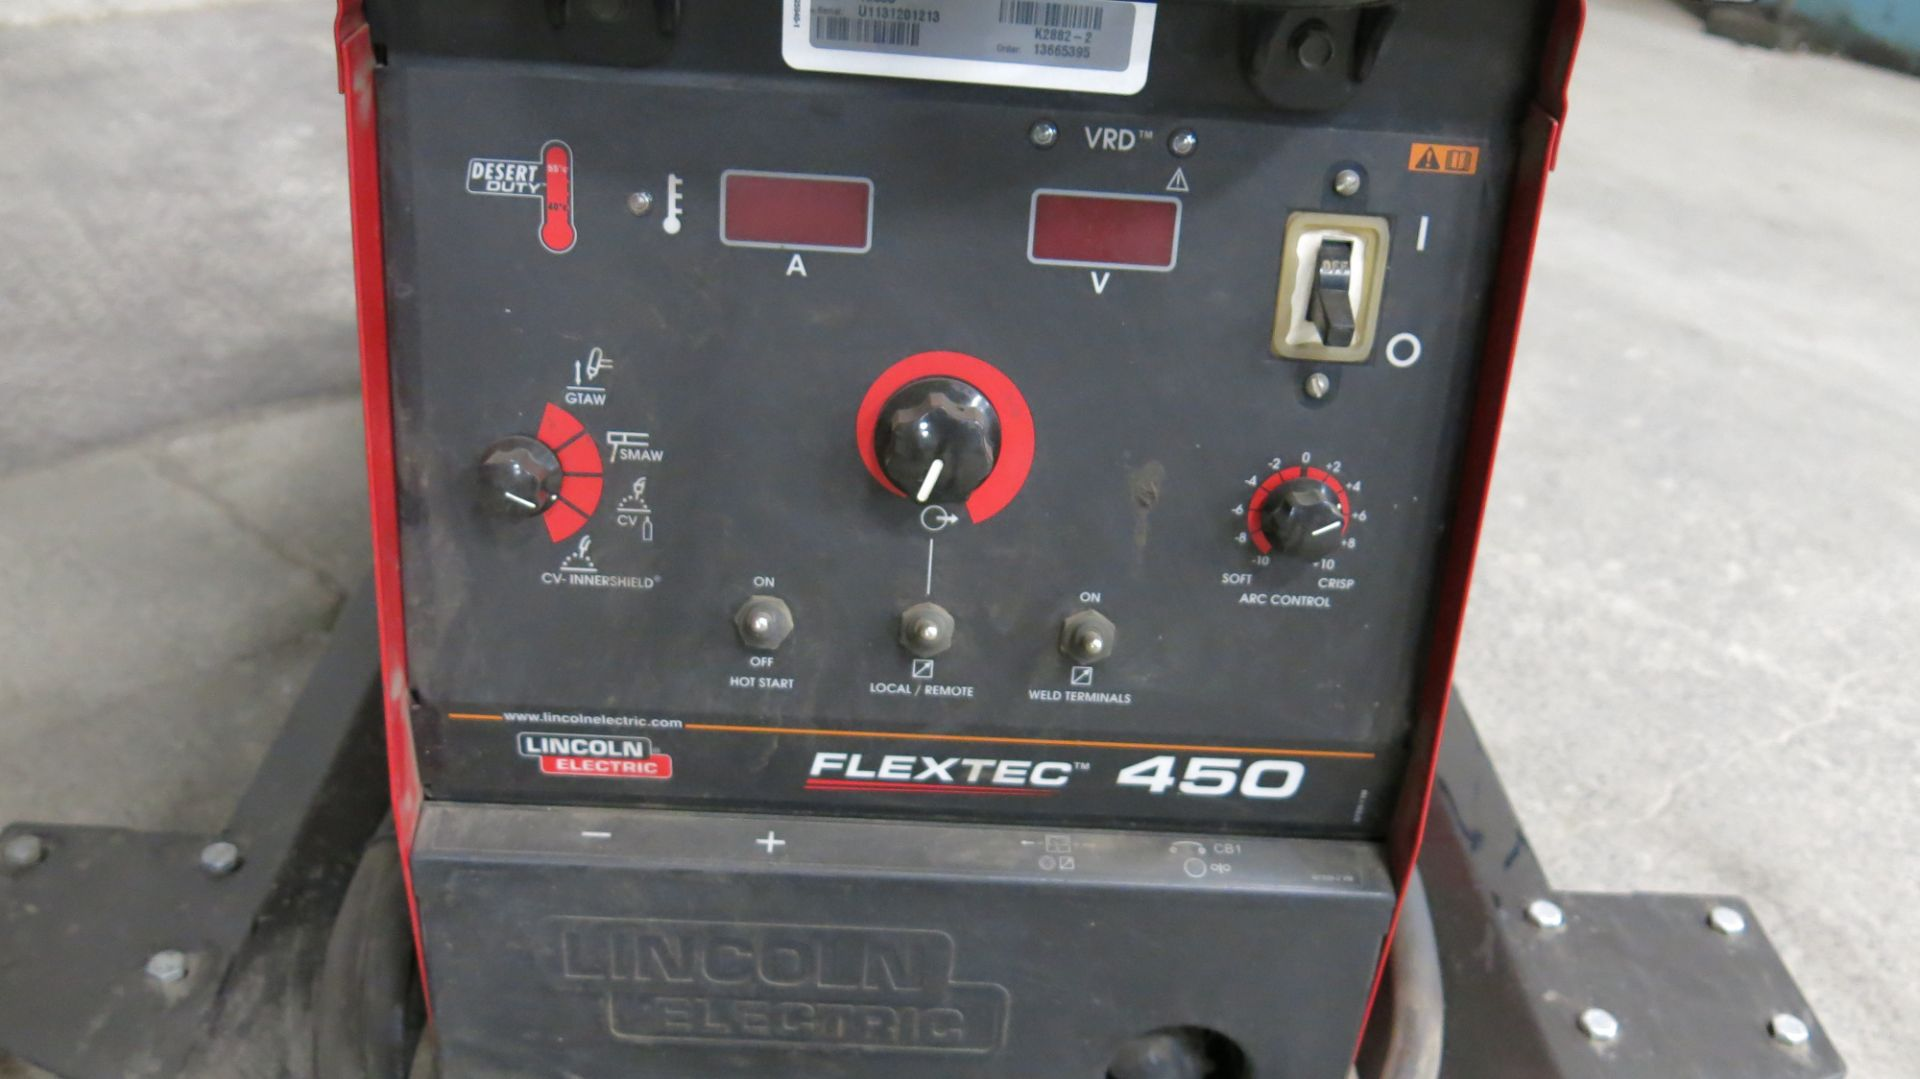 Lot 47 - LINCOLN, FLEXTEC 450, 450 AMP, MULTI PROCESS WELDER (MIG, TIG, STICK, FLUX-CORED, ARC GOUGING)